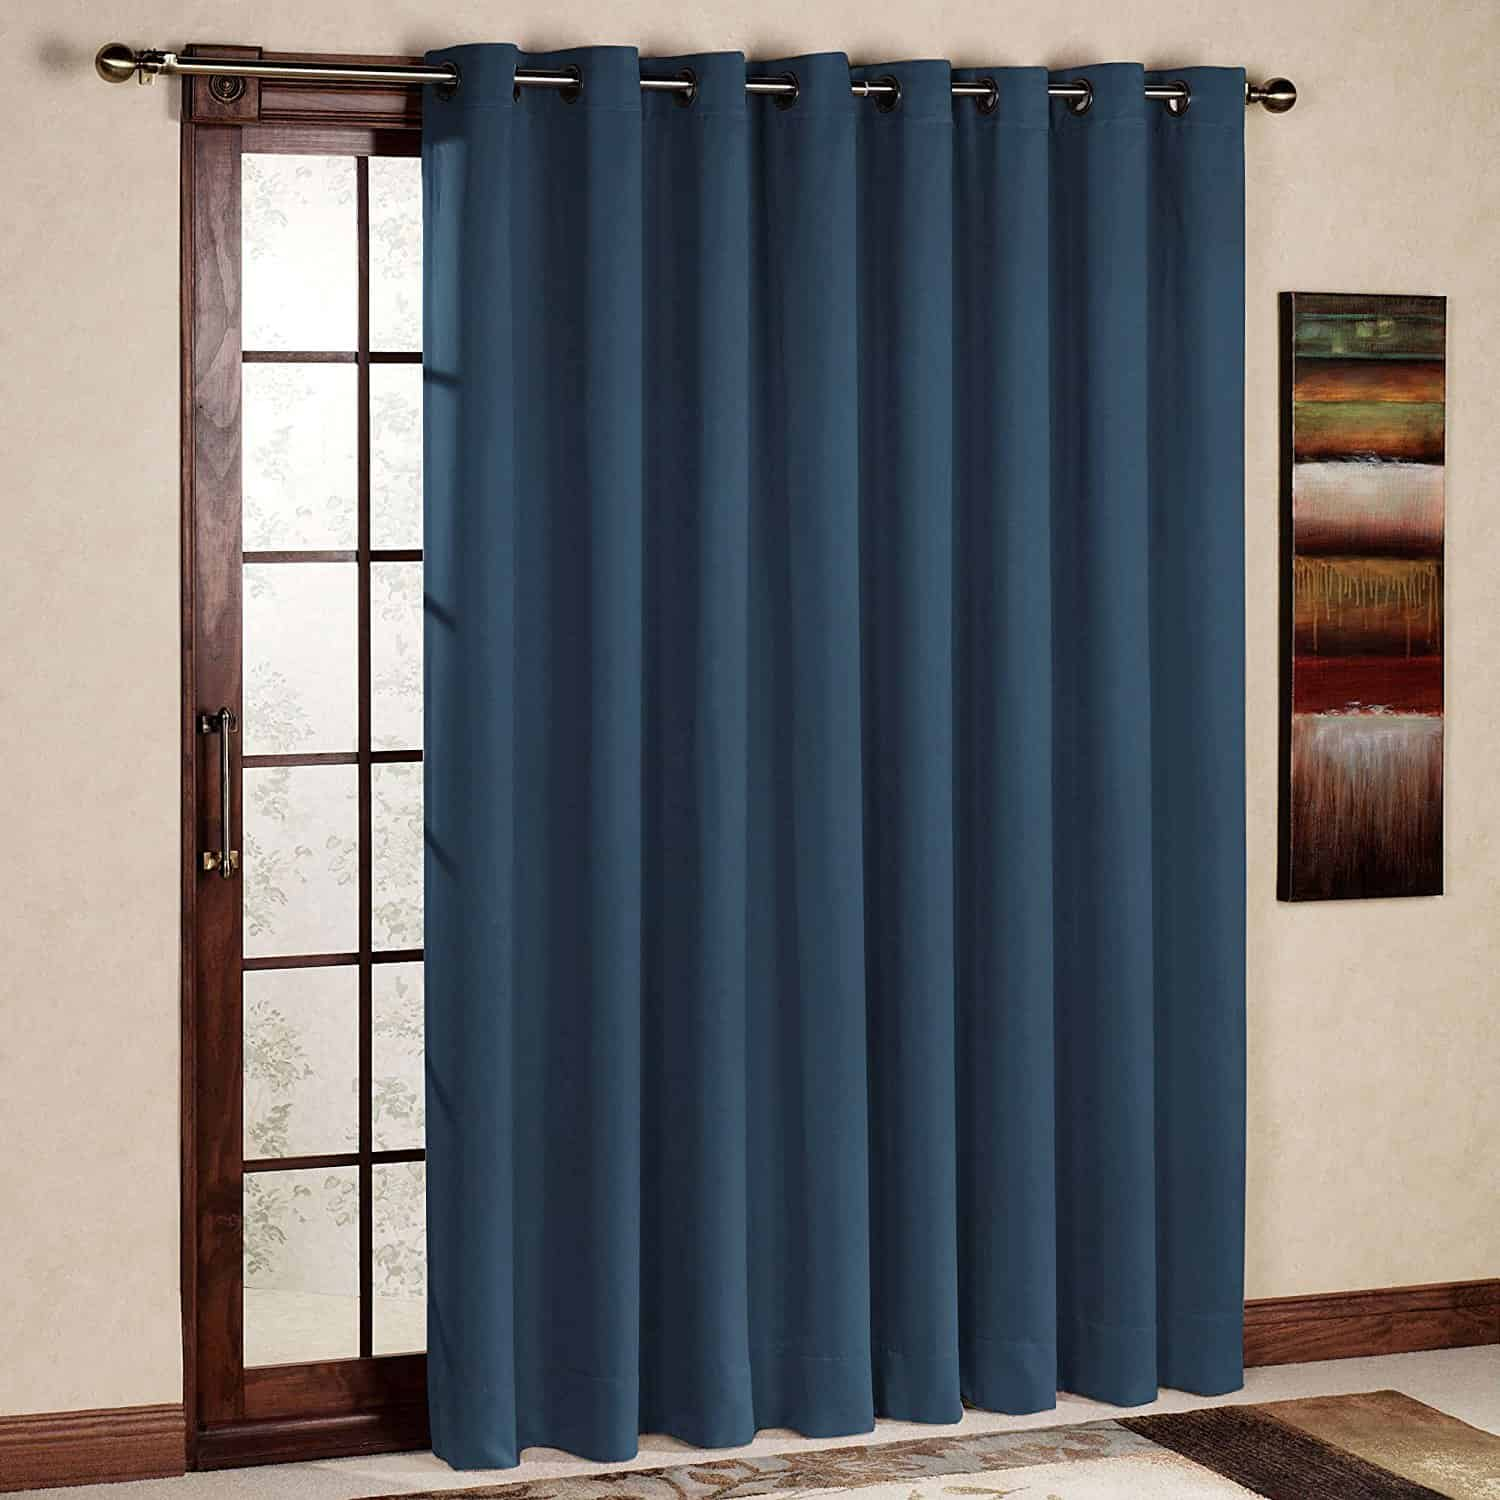 x ca panel amazon curtains thermal curtain panels door blackout wheat kitchen eclipse patio sliding dp home